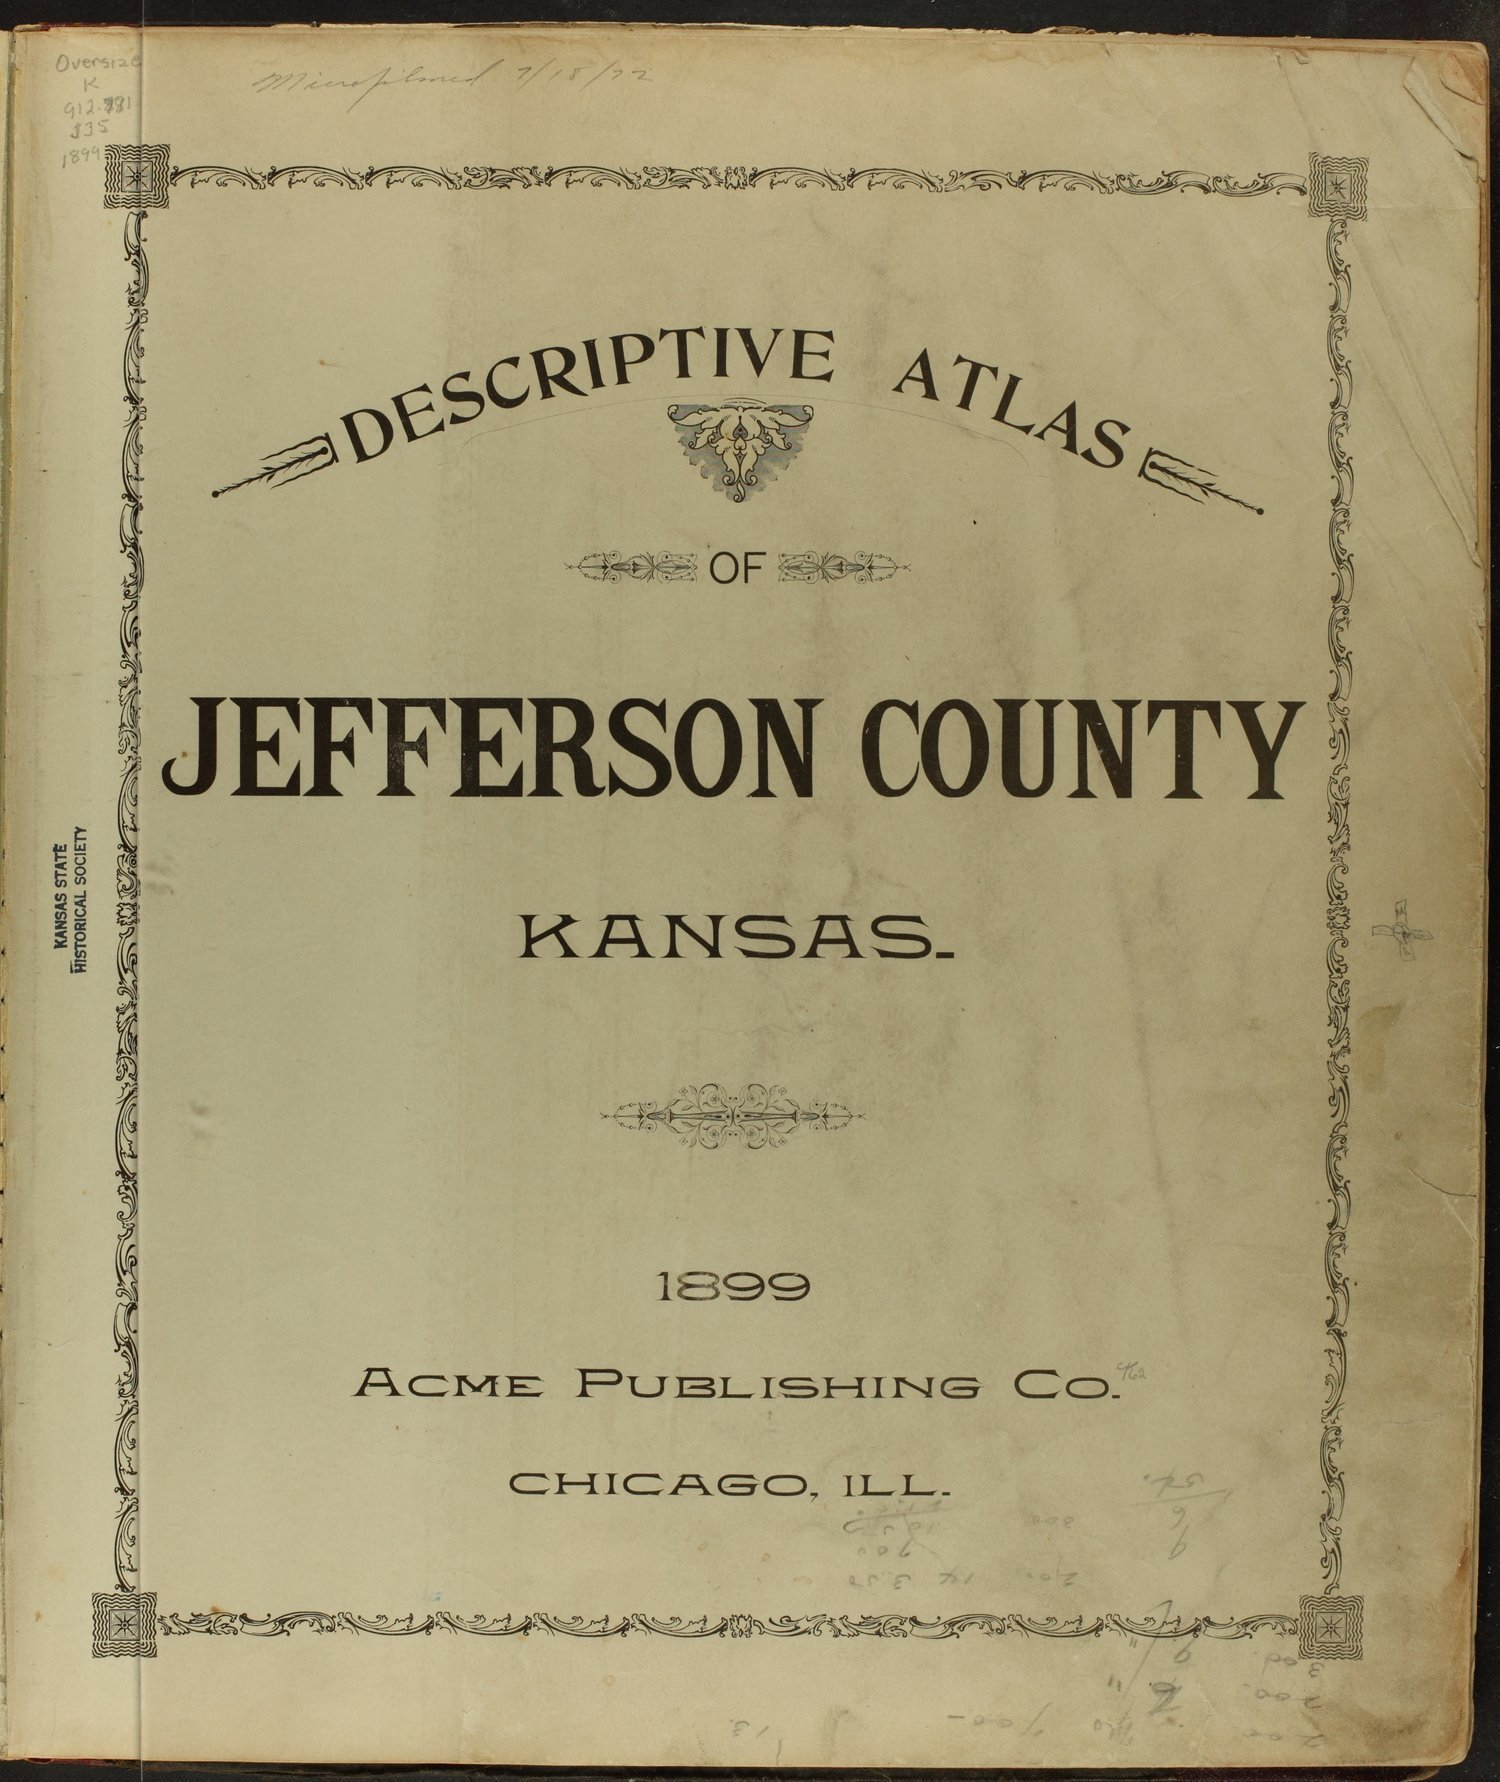 Descriptive atlas of Jefferson County, Kansas - Title Page